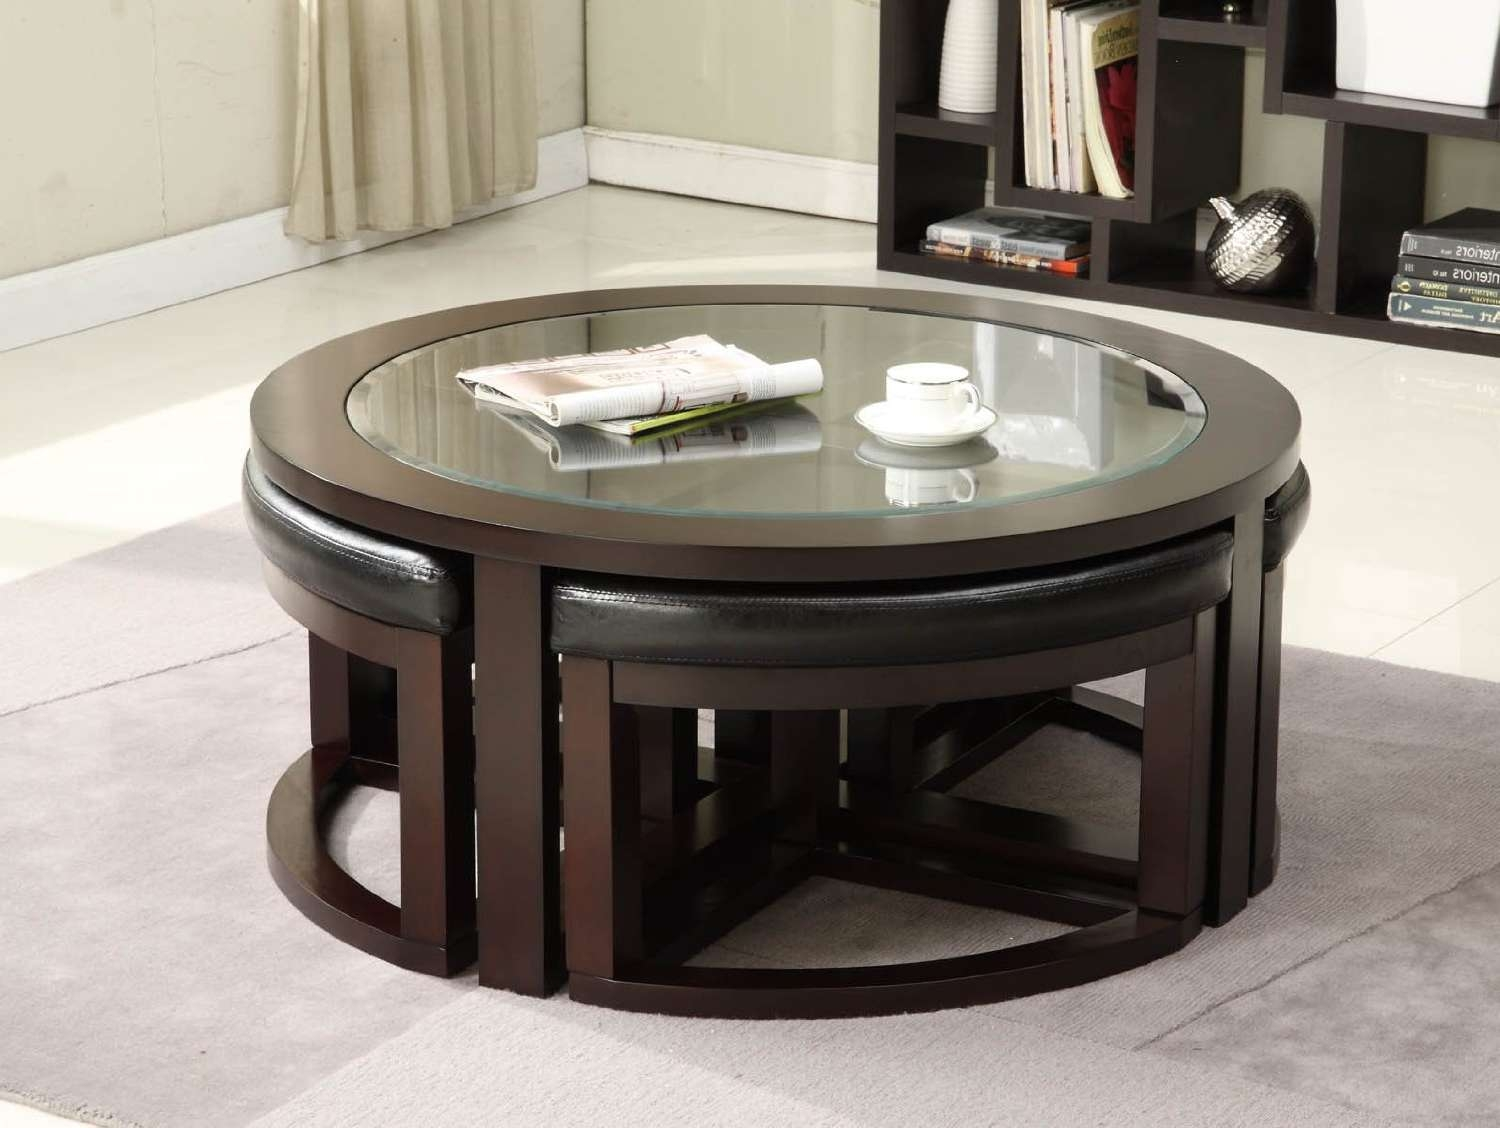 Coffee Table With Chair Stunning Round Coffee Table With Wedge Within Well Known Coffee Table With Chairs (View 13 of 20)